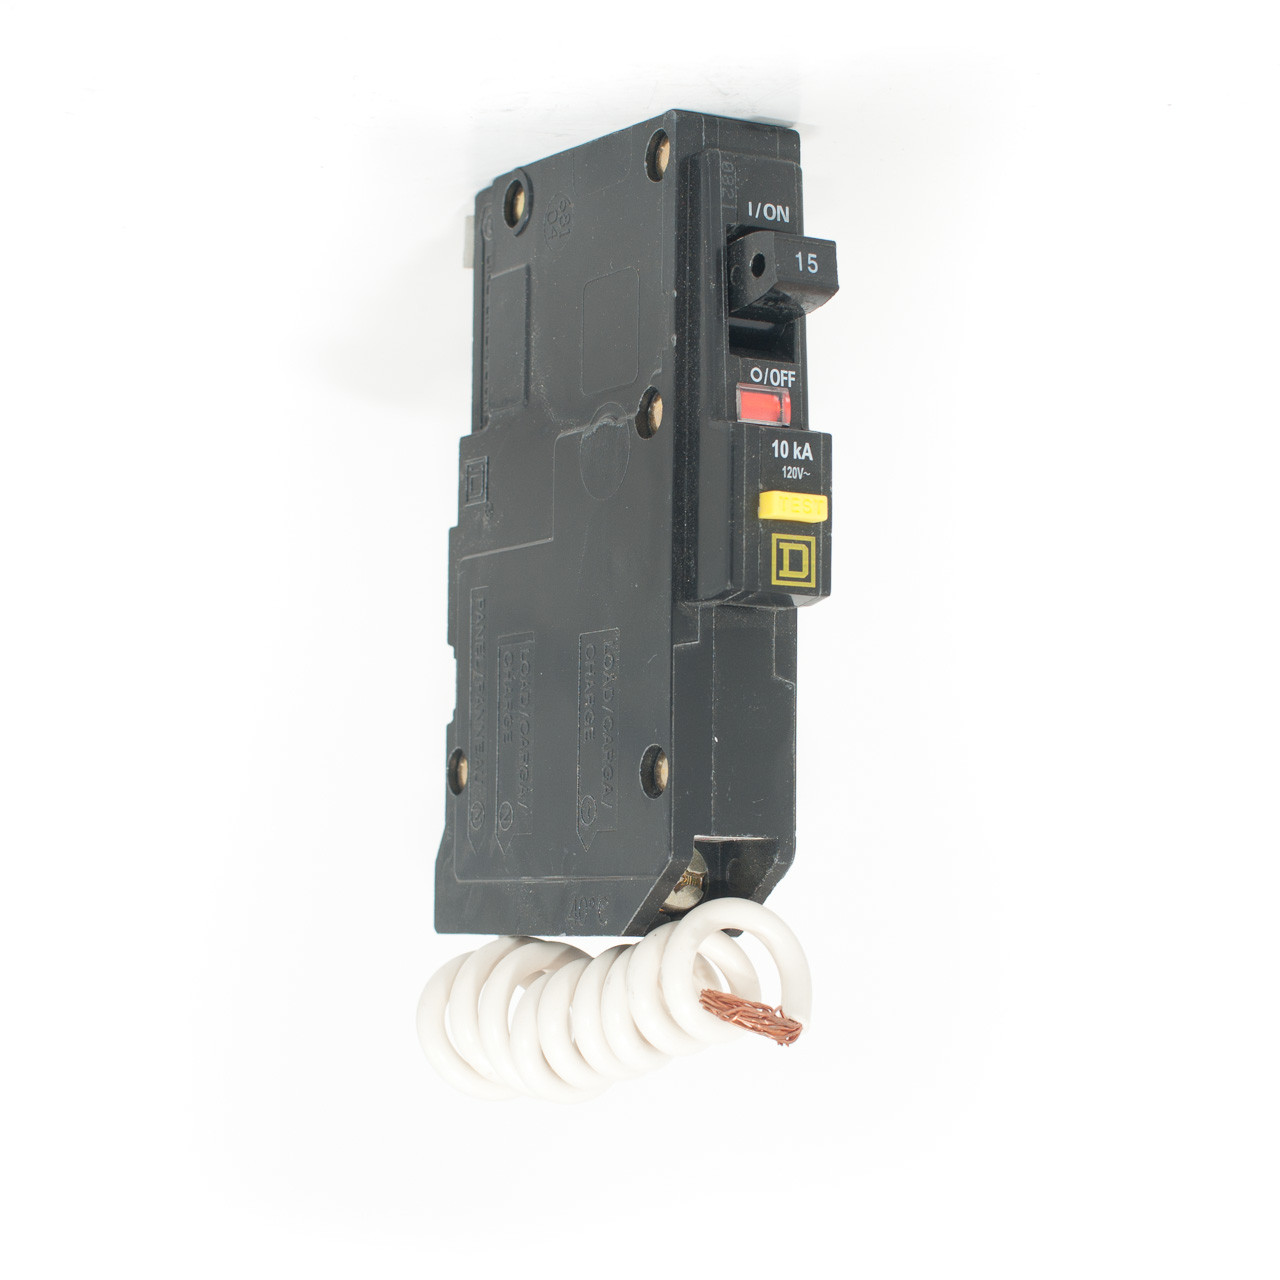 Groundfault Interrupter Gfi Or Gfci Protects Against Short Circut Square D Qo Qwikgard 15 Amp Singlepole Circuit Breaker 15a Single Pole Push On